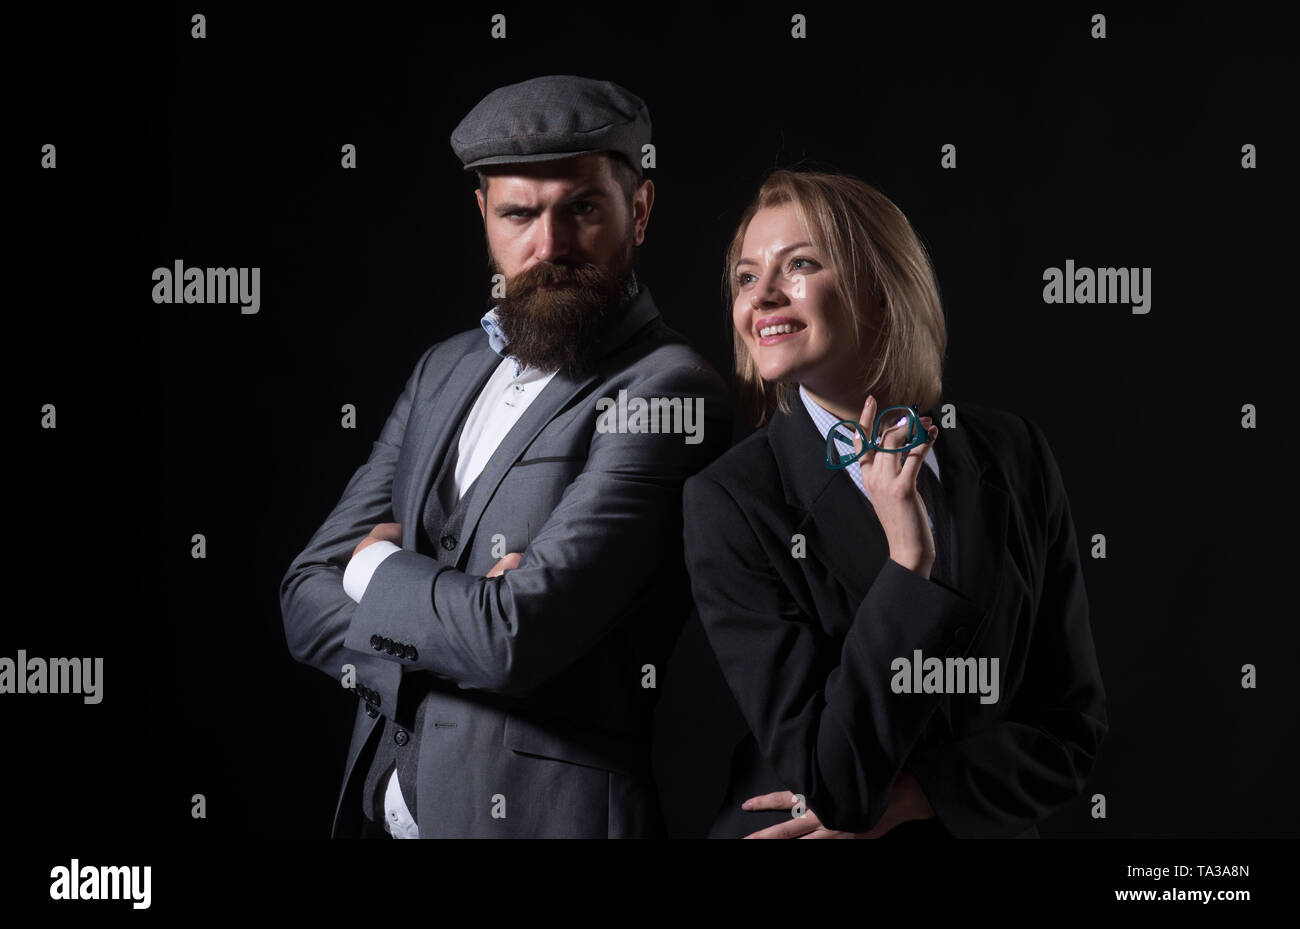 Man and woman in oldfashioned suit and hat - Stock Image